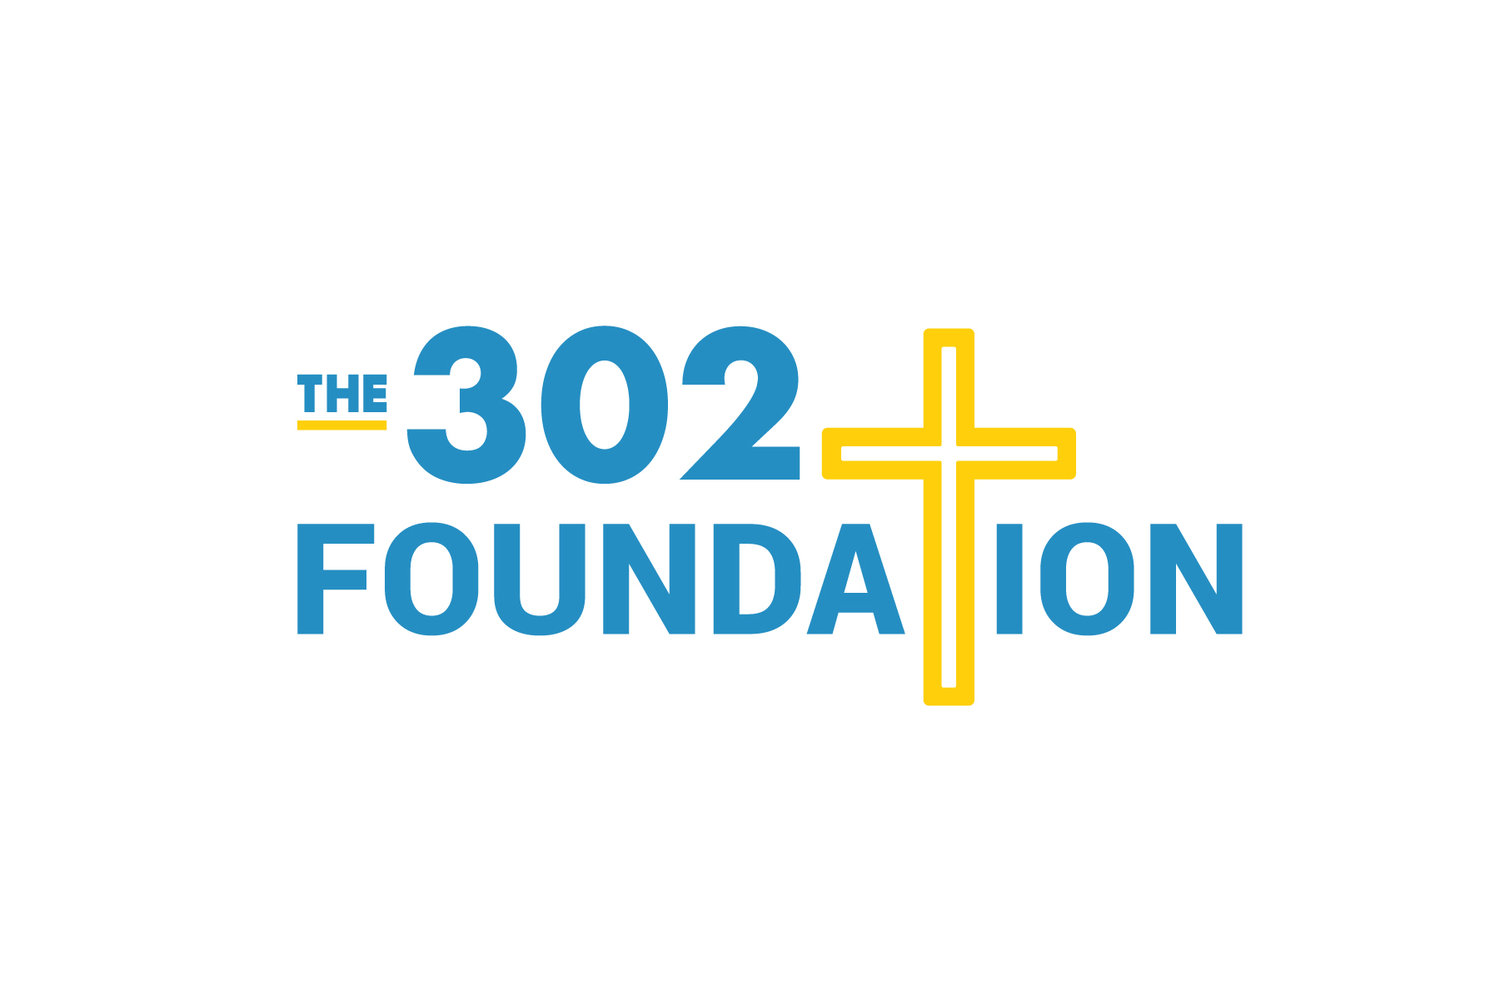 The+302+Foundation_FINAL+LOGO_RGB-01.jpg